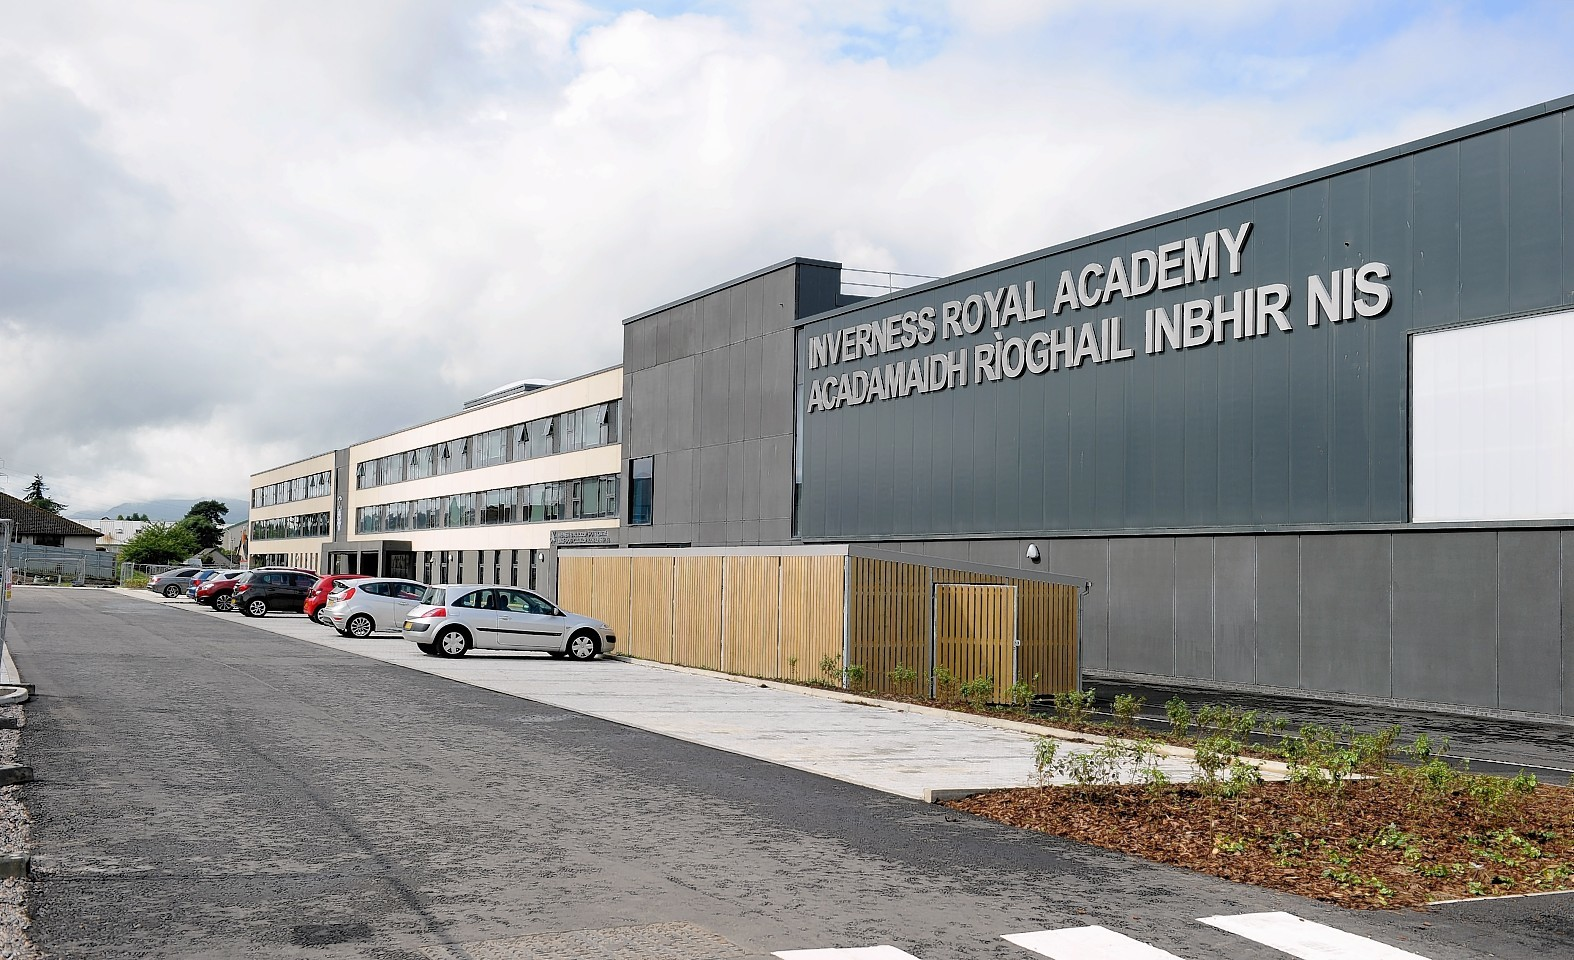 The tools were stolen from a site compund near the new Inverness Royal Academy